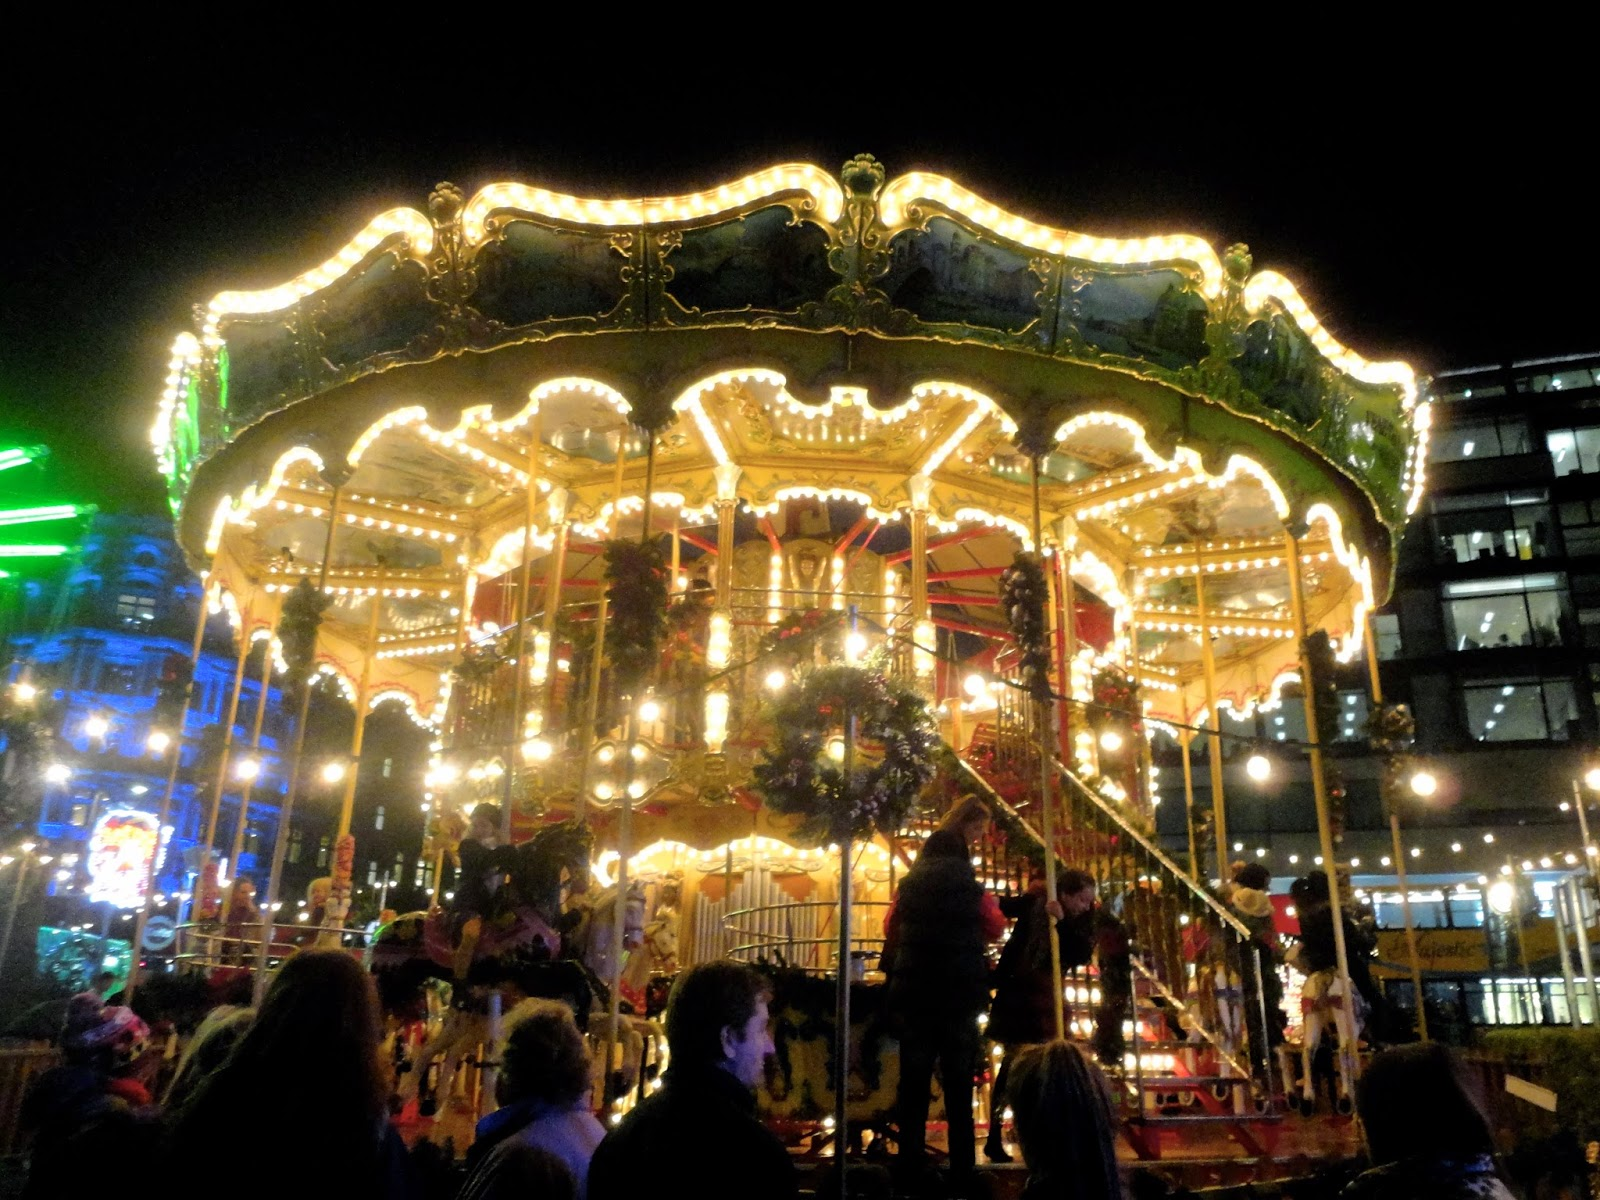 Carousel in Edinburgh's Winter Wonderland at Christmas in Princes Street Gardens